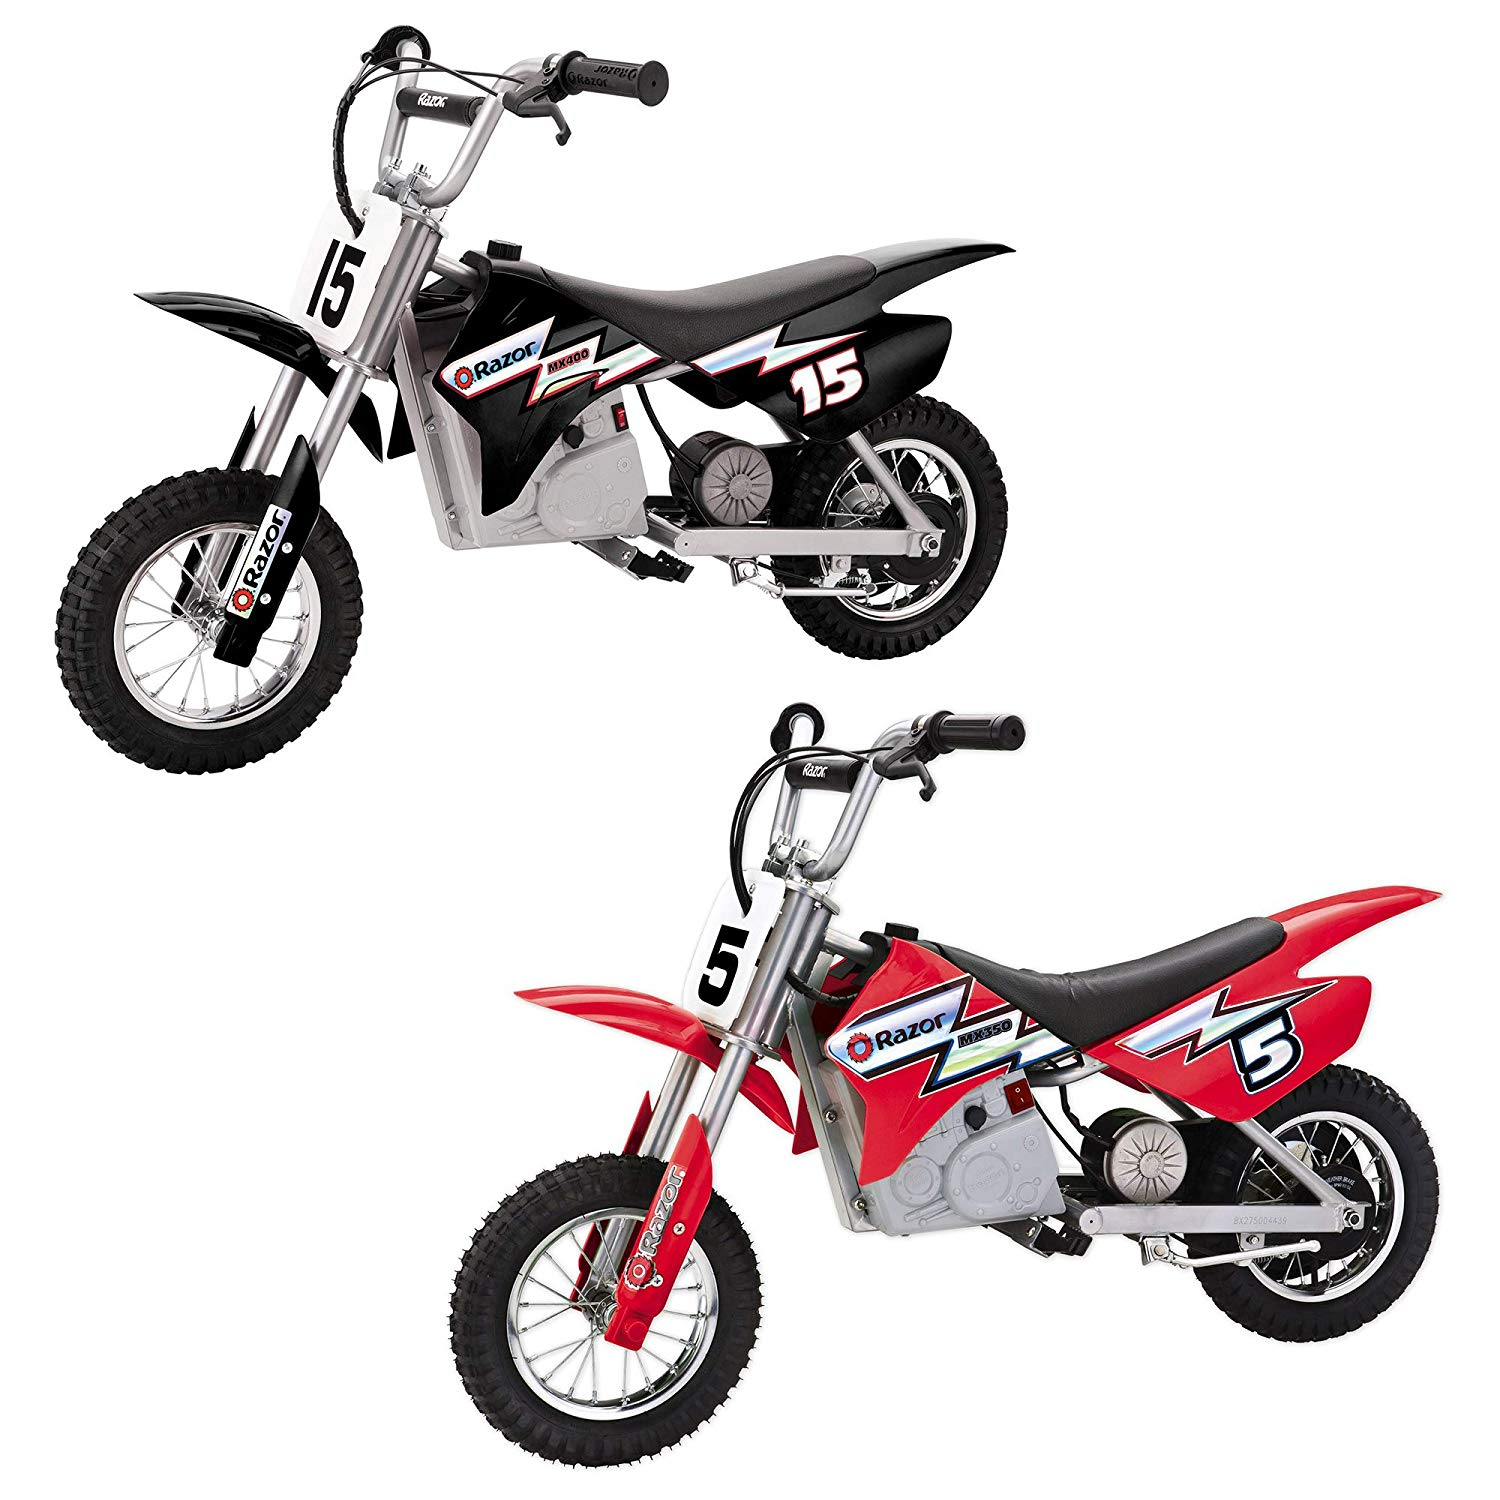 Back To Search Resultsautomobiles & Motorcycles New 35mm Taotao Air Filter #6 For 110cc 125cc Coolster Childs Atv With Chinese Motor Vivid And Great In Style